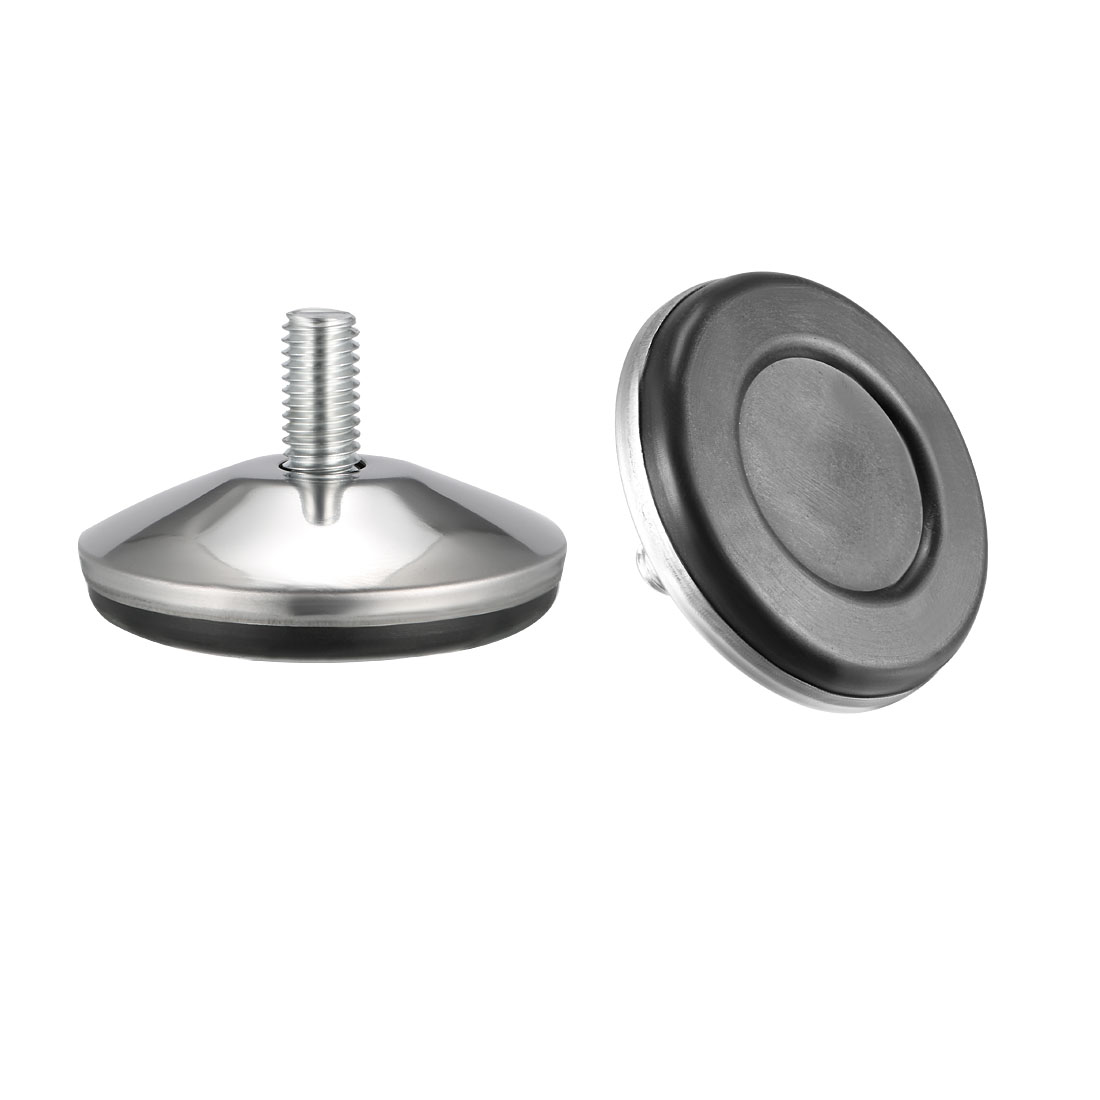 uxcell Furniture Levelers  16mm to 20mm Adjustable Height M8 x 15mm Threaded  4Pcs|Furniture Pads| |  - title=